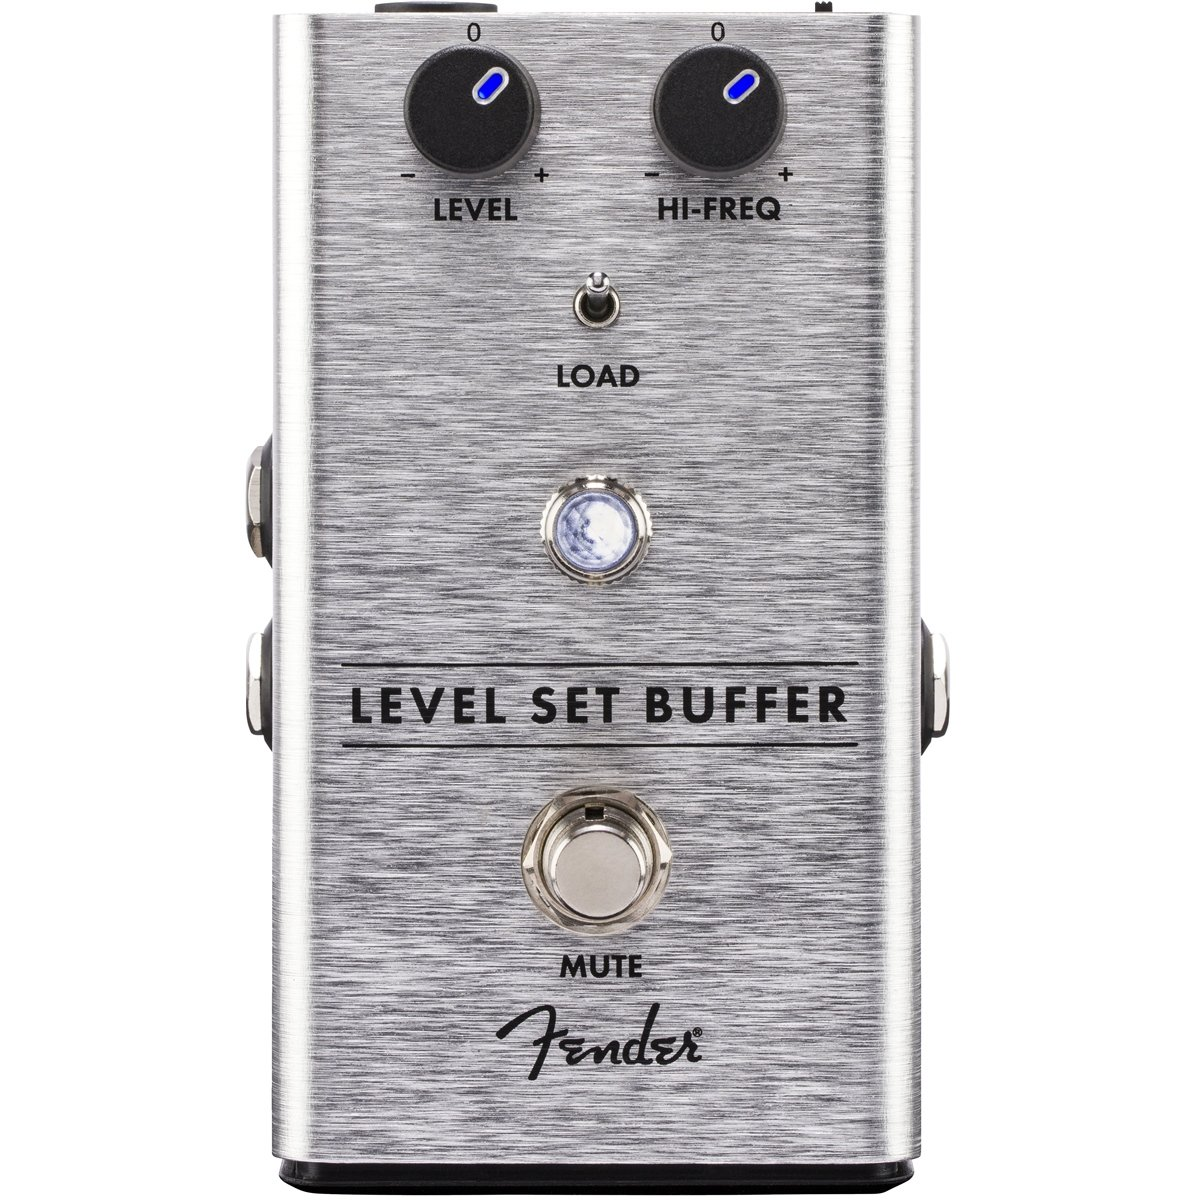 Level Set Buffer Pedal